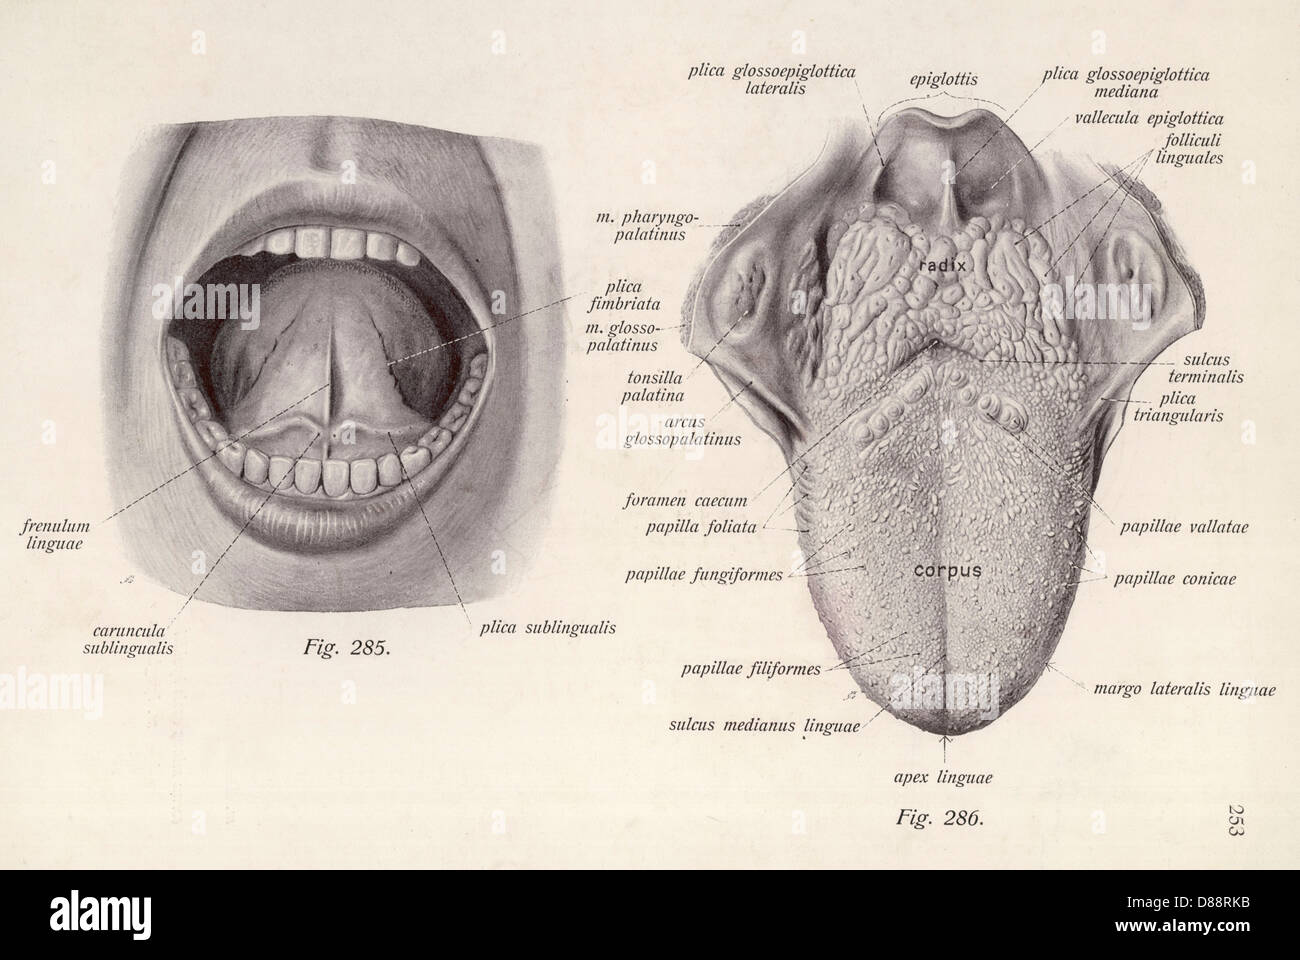 diagram tongue stock photos & diagram tongue stock images - alamy